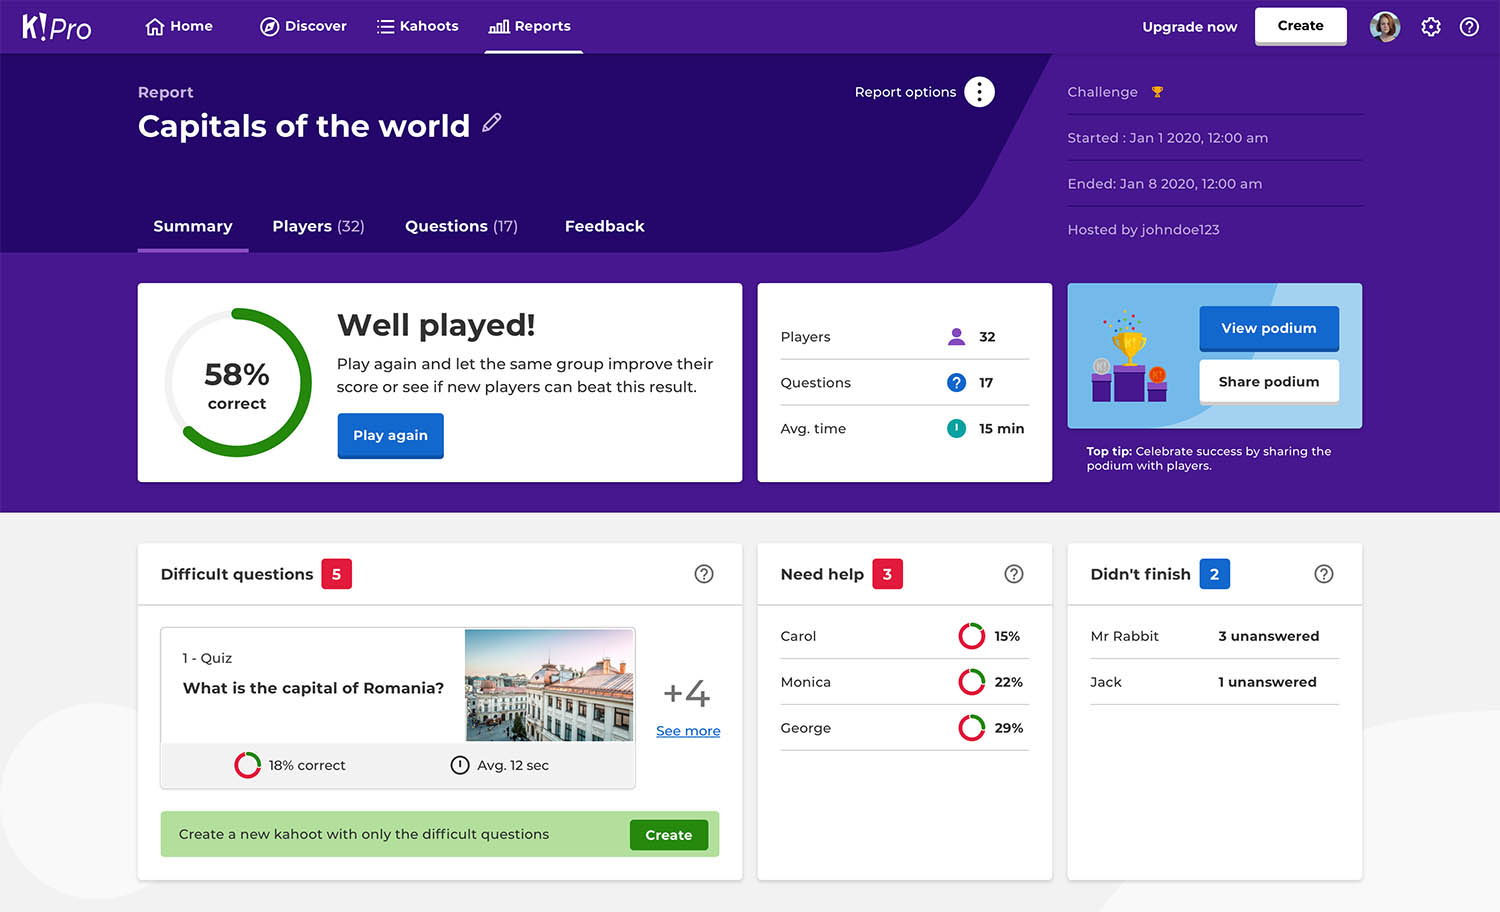 How To Assess Results Of Student Paced Challenges In Kahoot